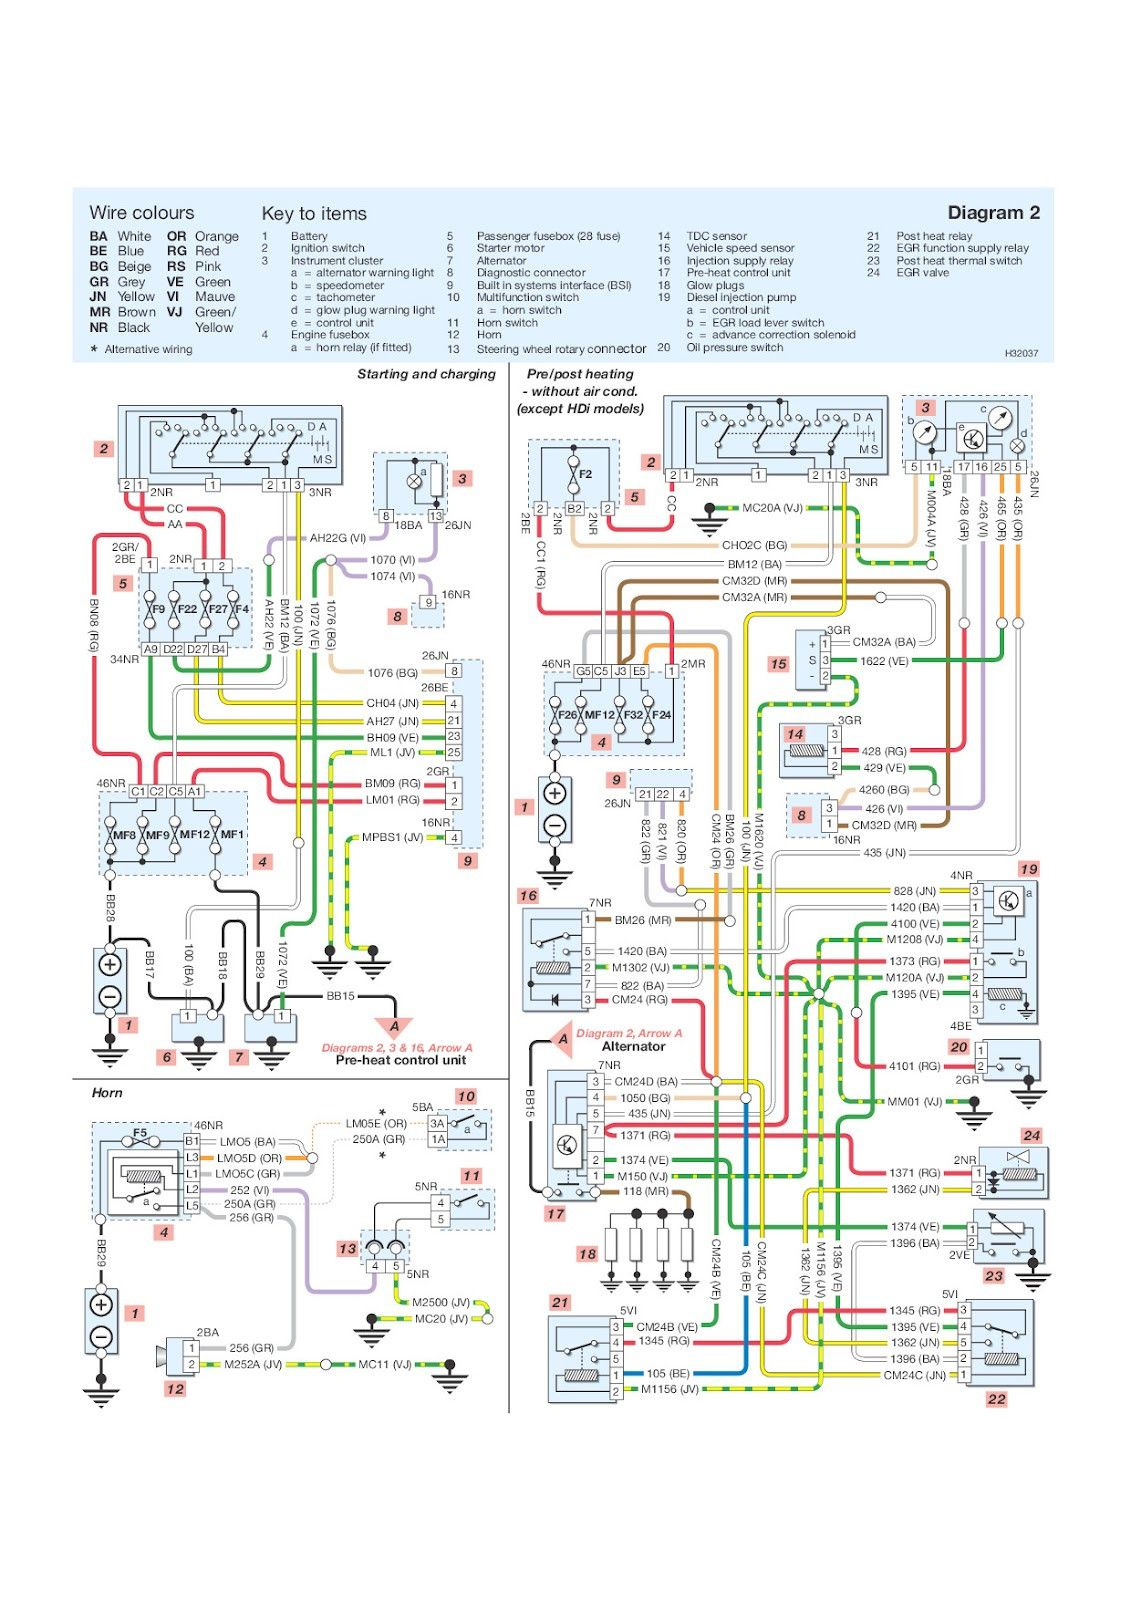 citroen engine cooling diagram wiring diagrams konsultpeugeot engine cooling diagram wiring diagram tags citroen engine cooling [ 1131 x 1600 Pixel ]